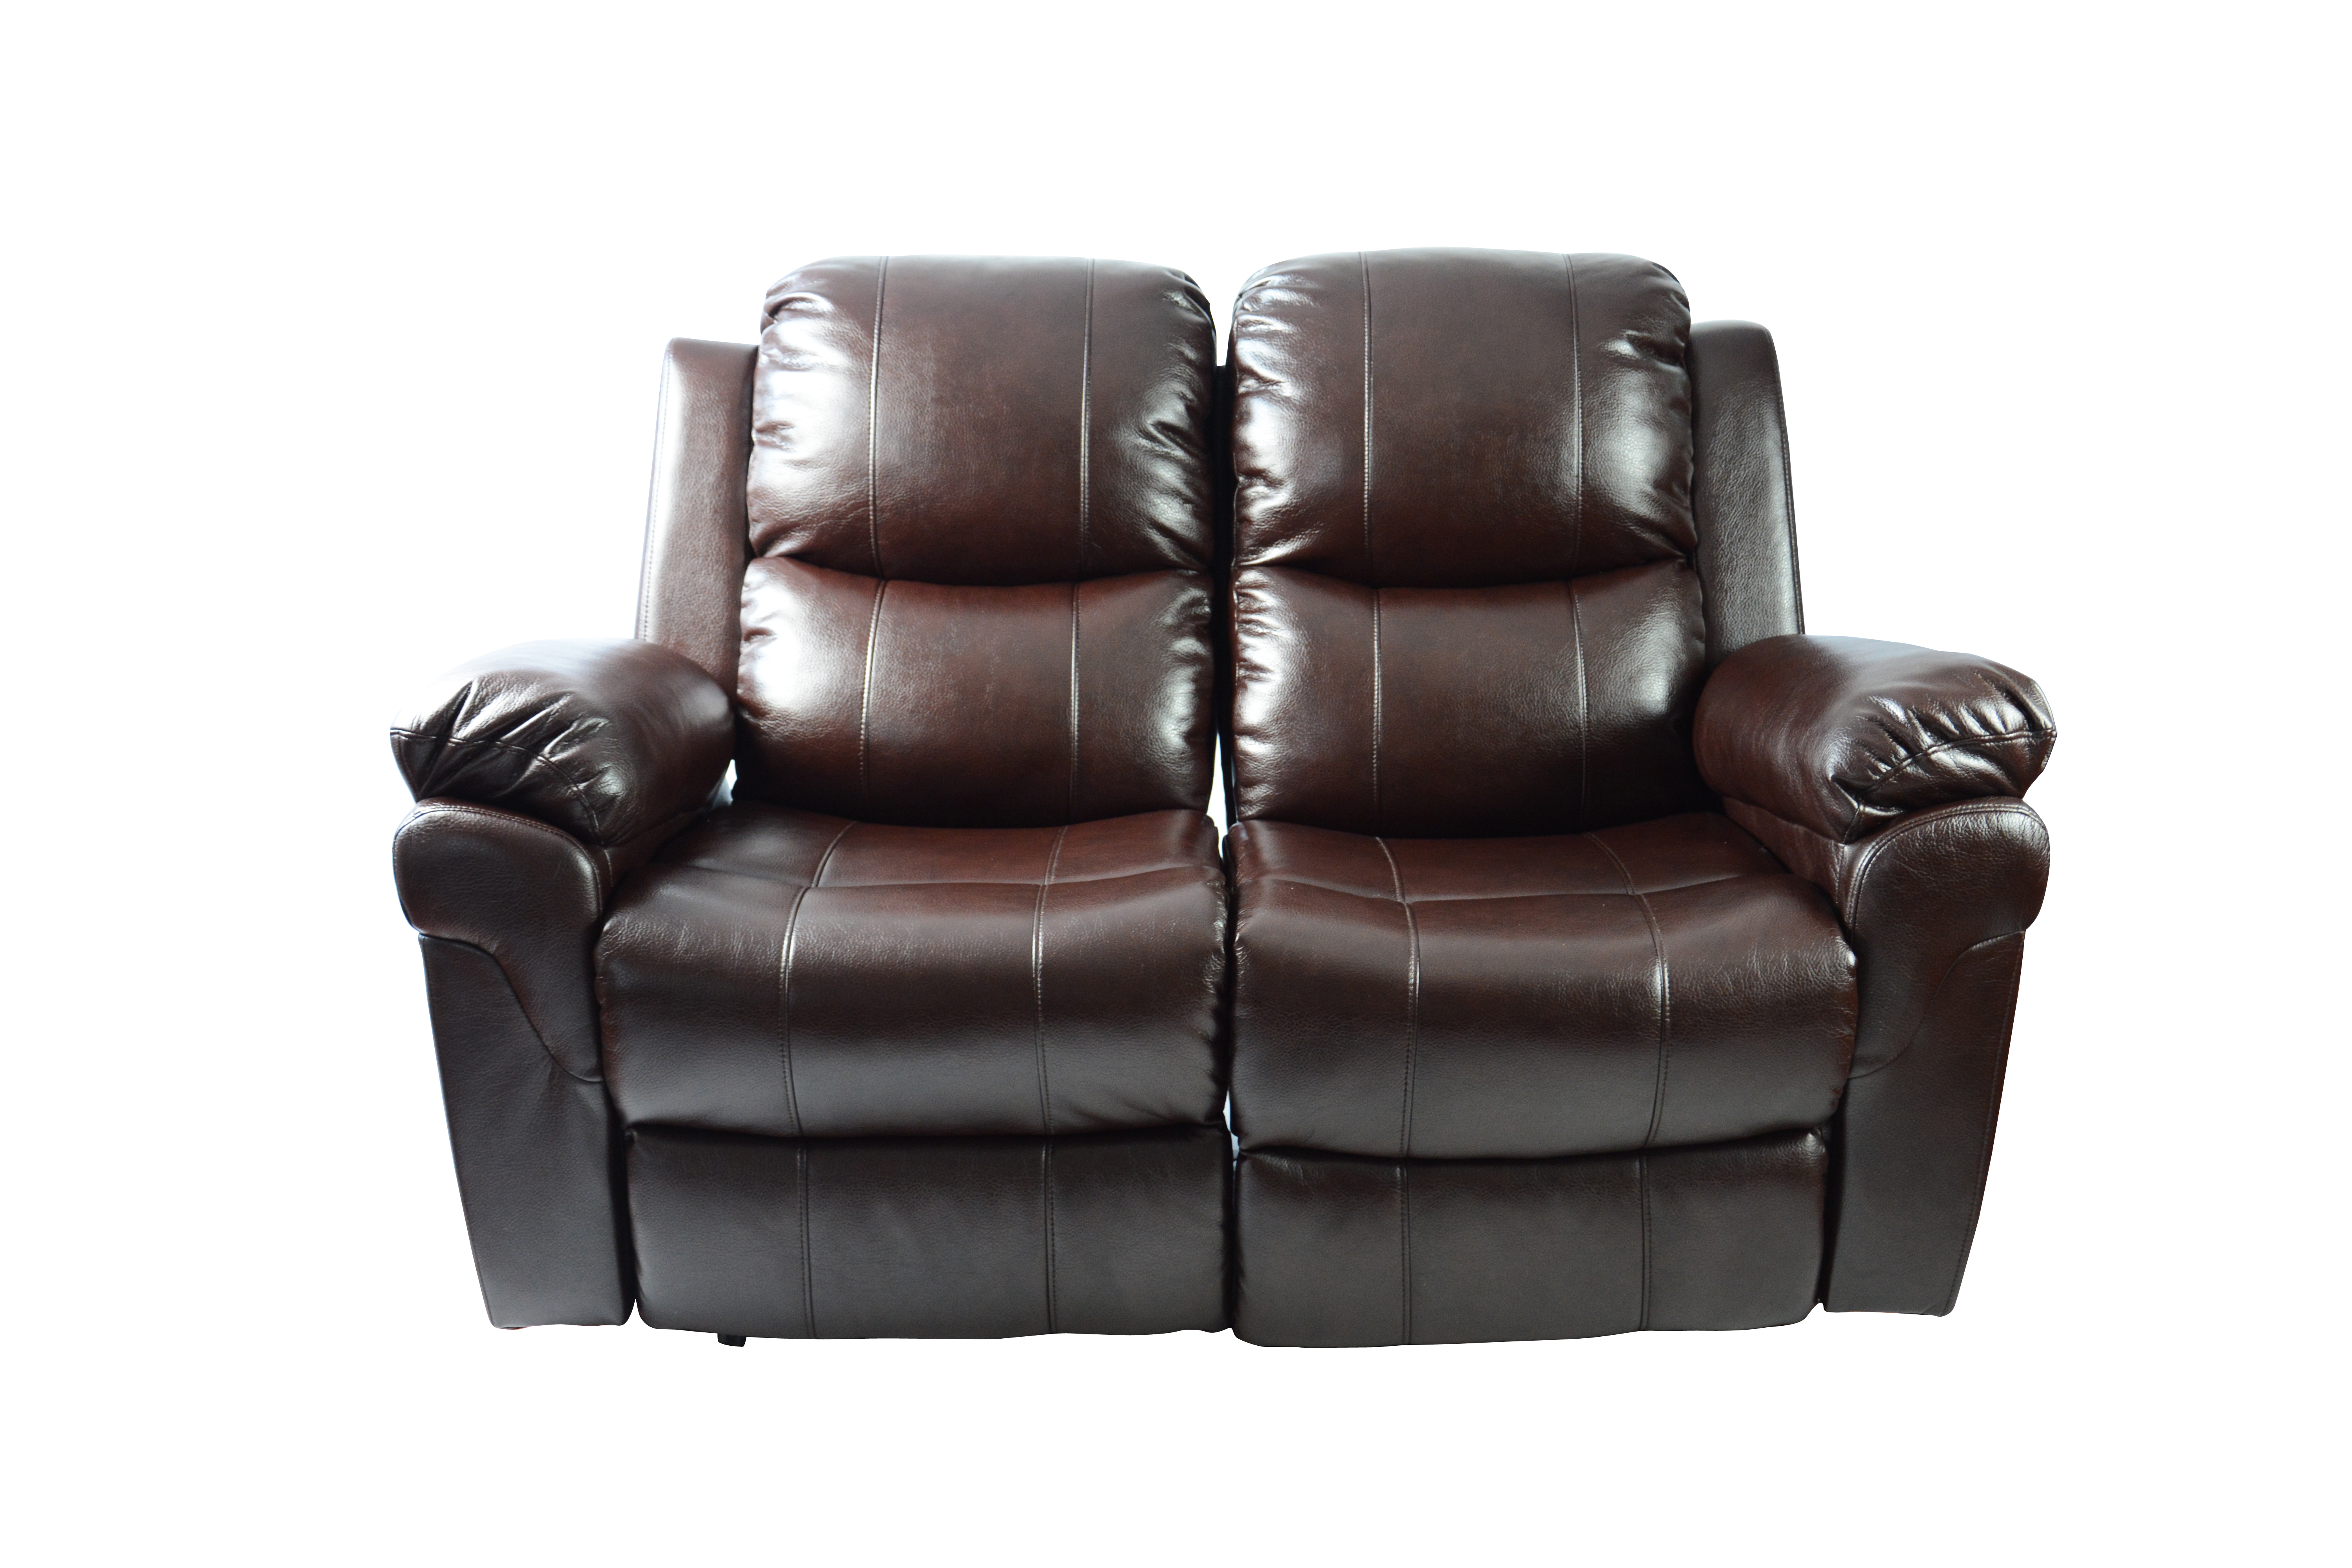 combination seat leather home theater recliner media sofa w